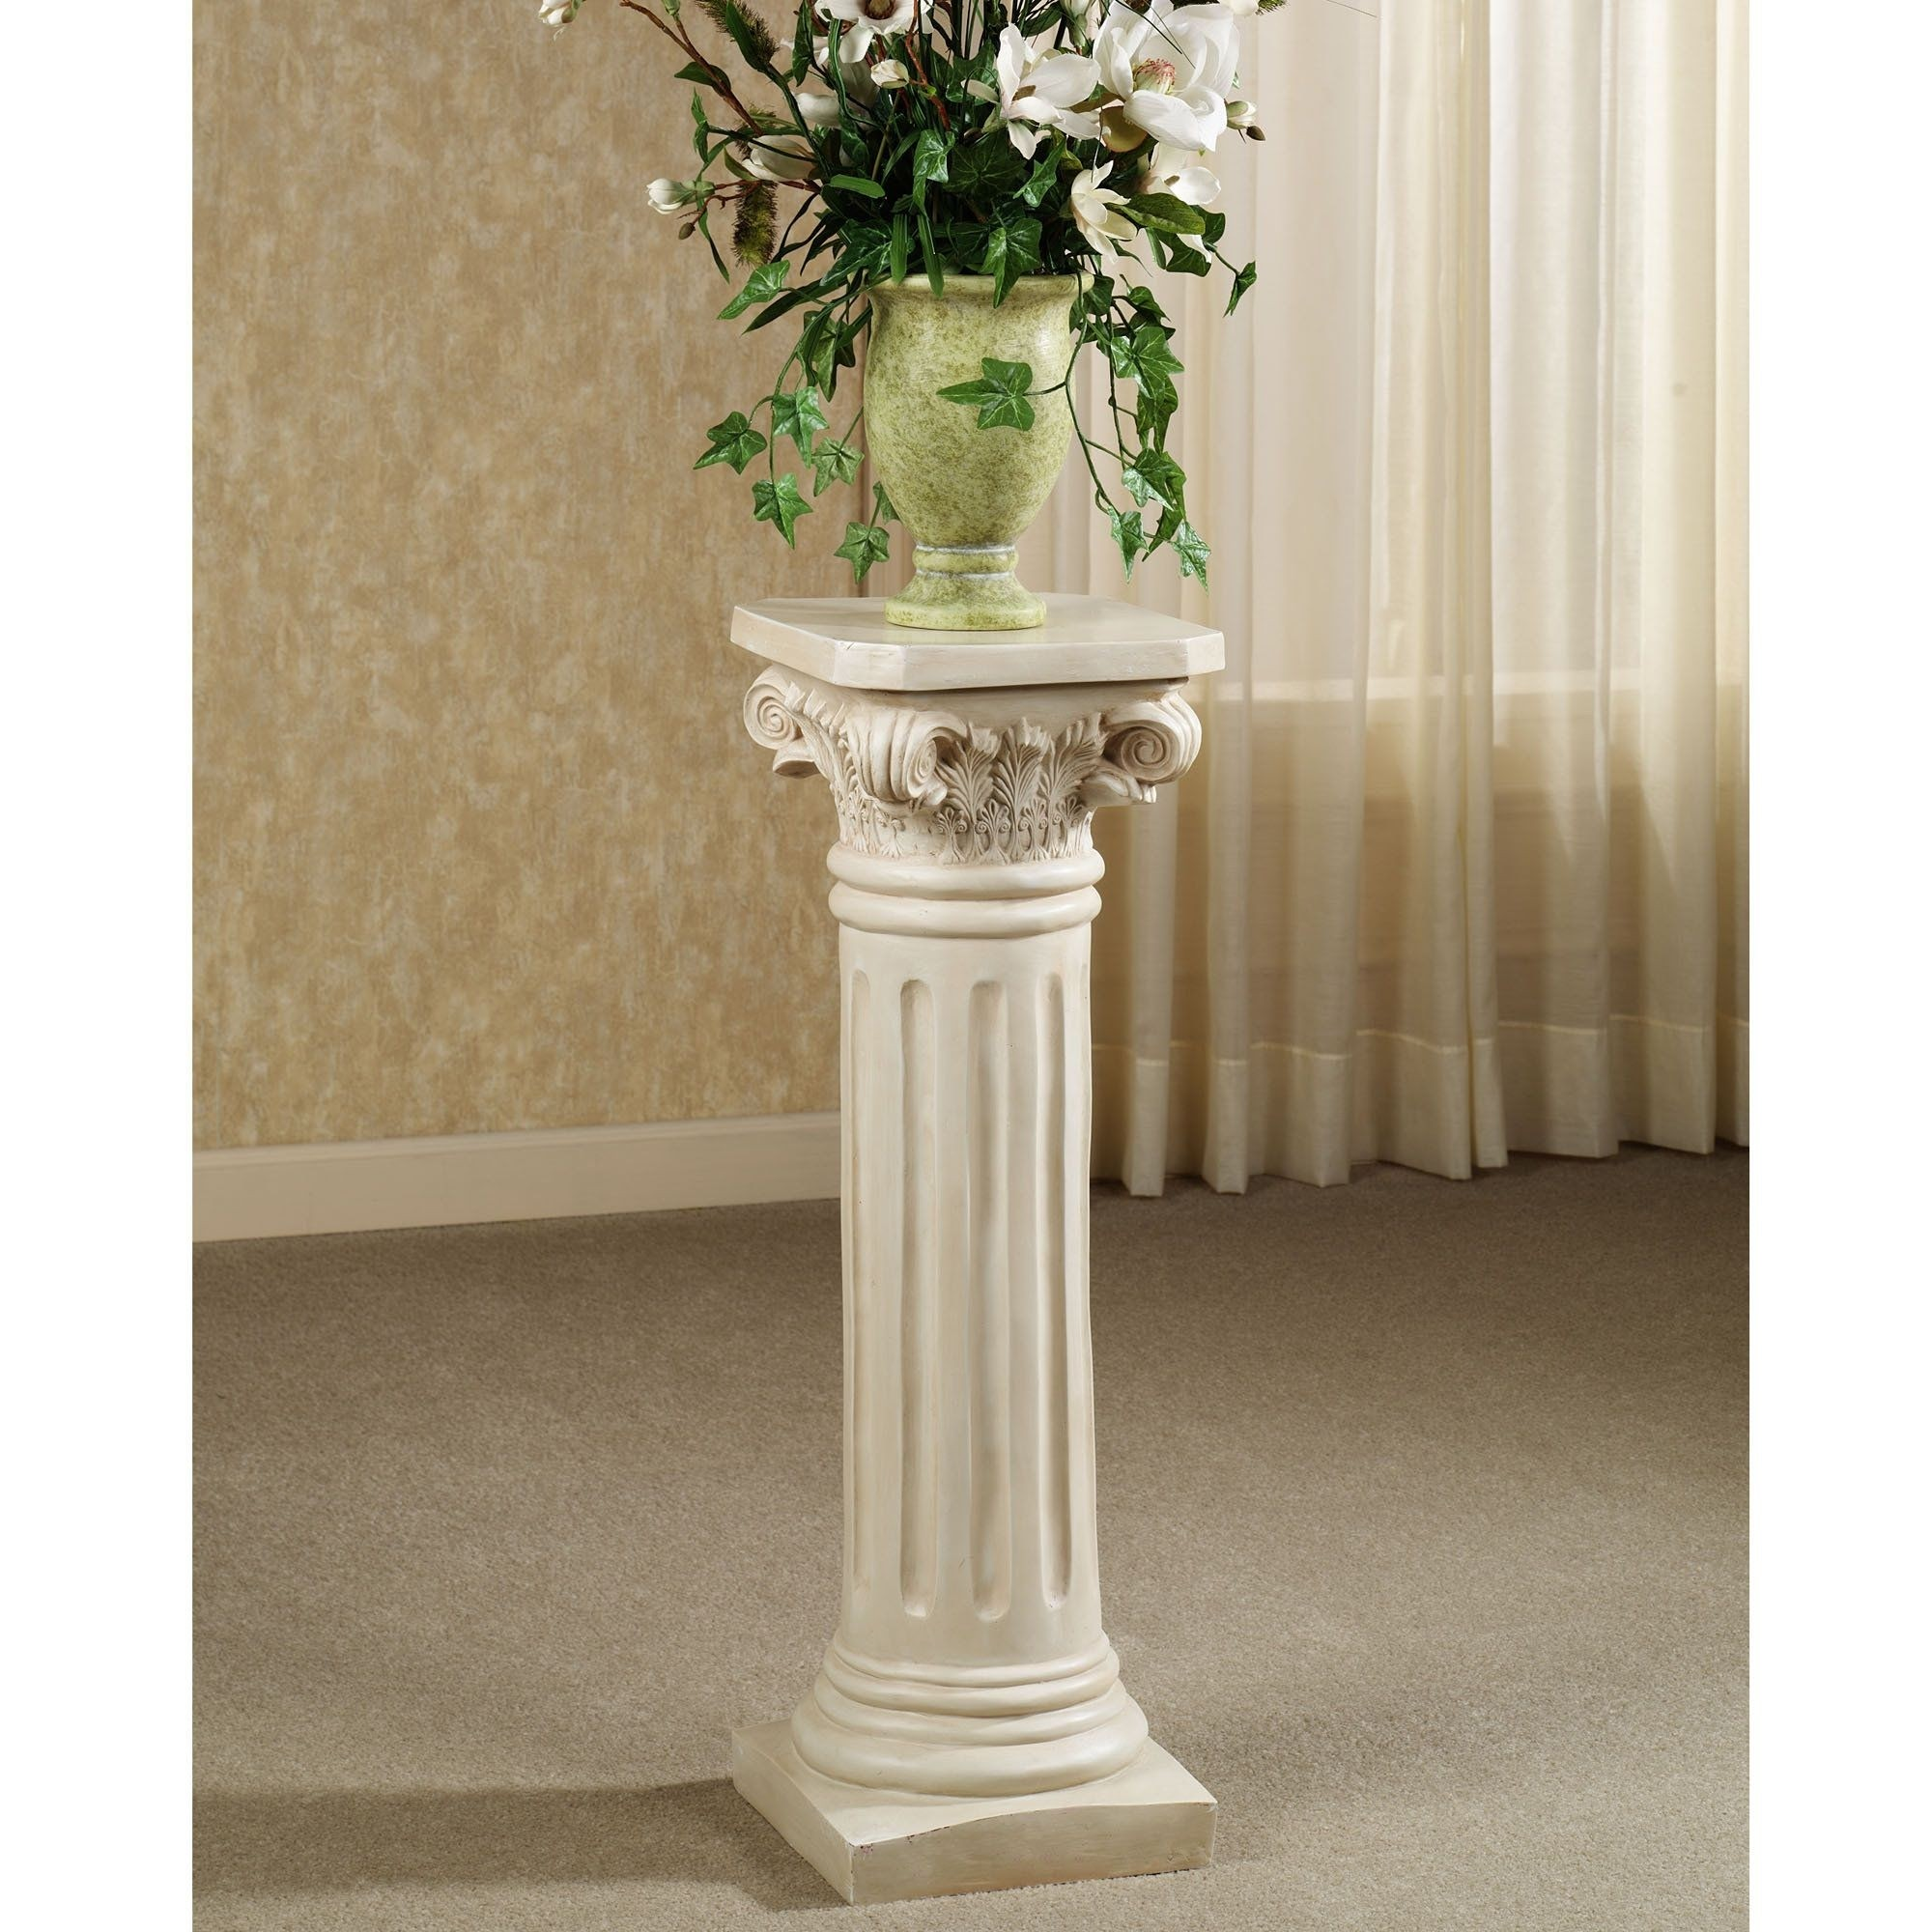 Garden Columns Pedestals Ideas On Foter